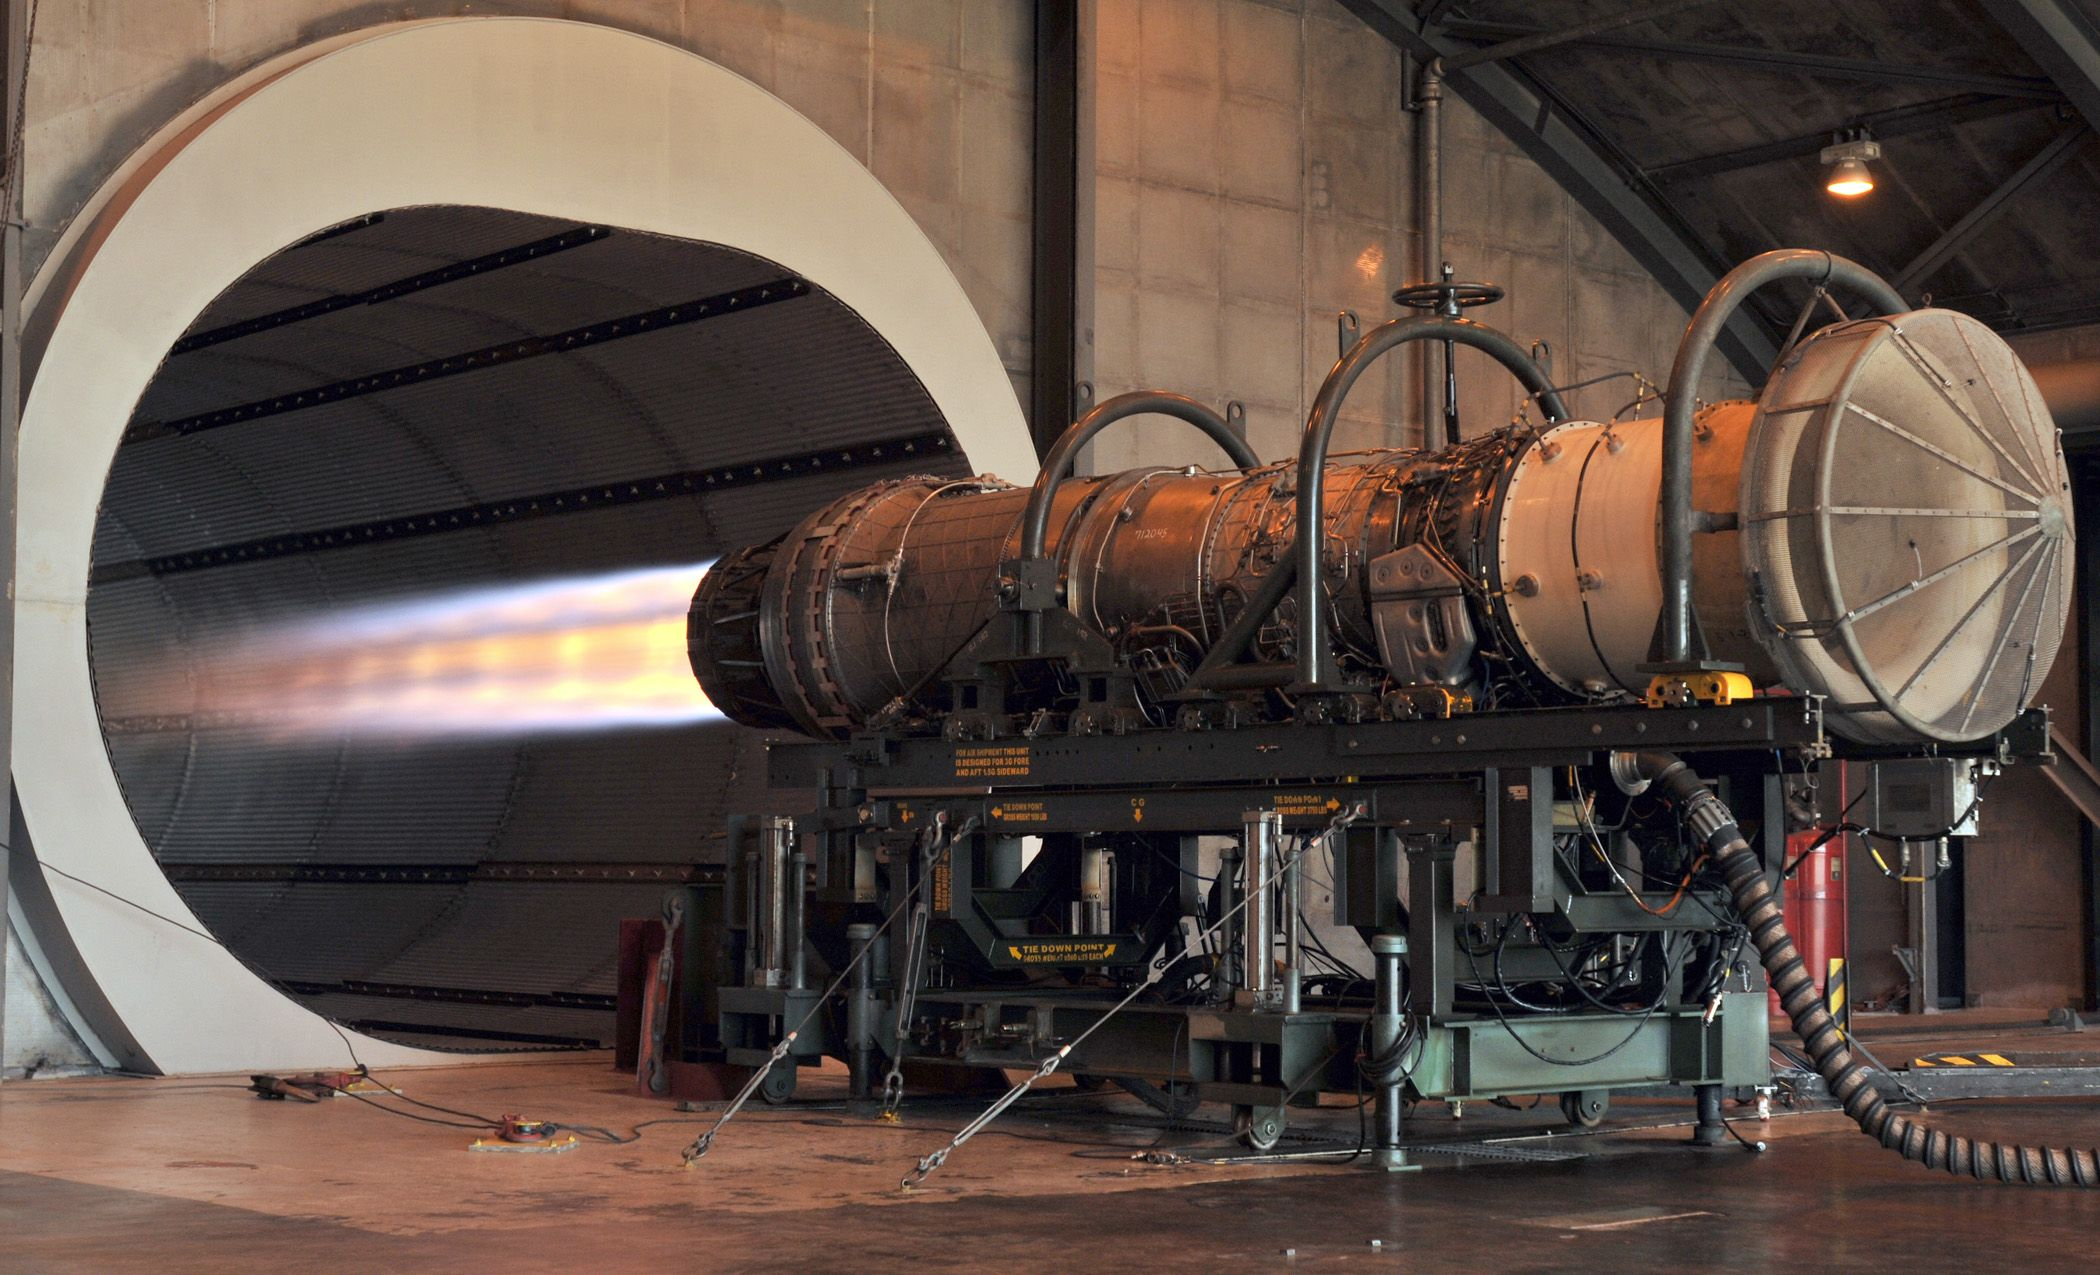 A Pratt & Whitney F100 turbofan engine for the F-15 Eagle being tested in the hush house at Florida Air National Guard base.